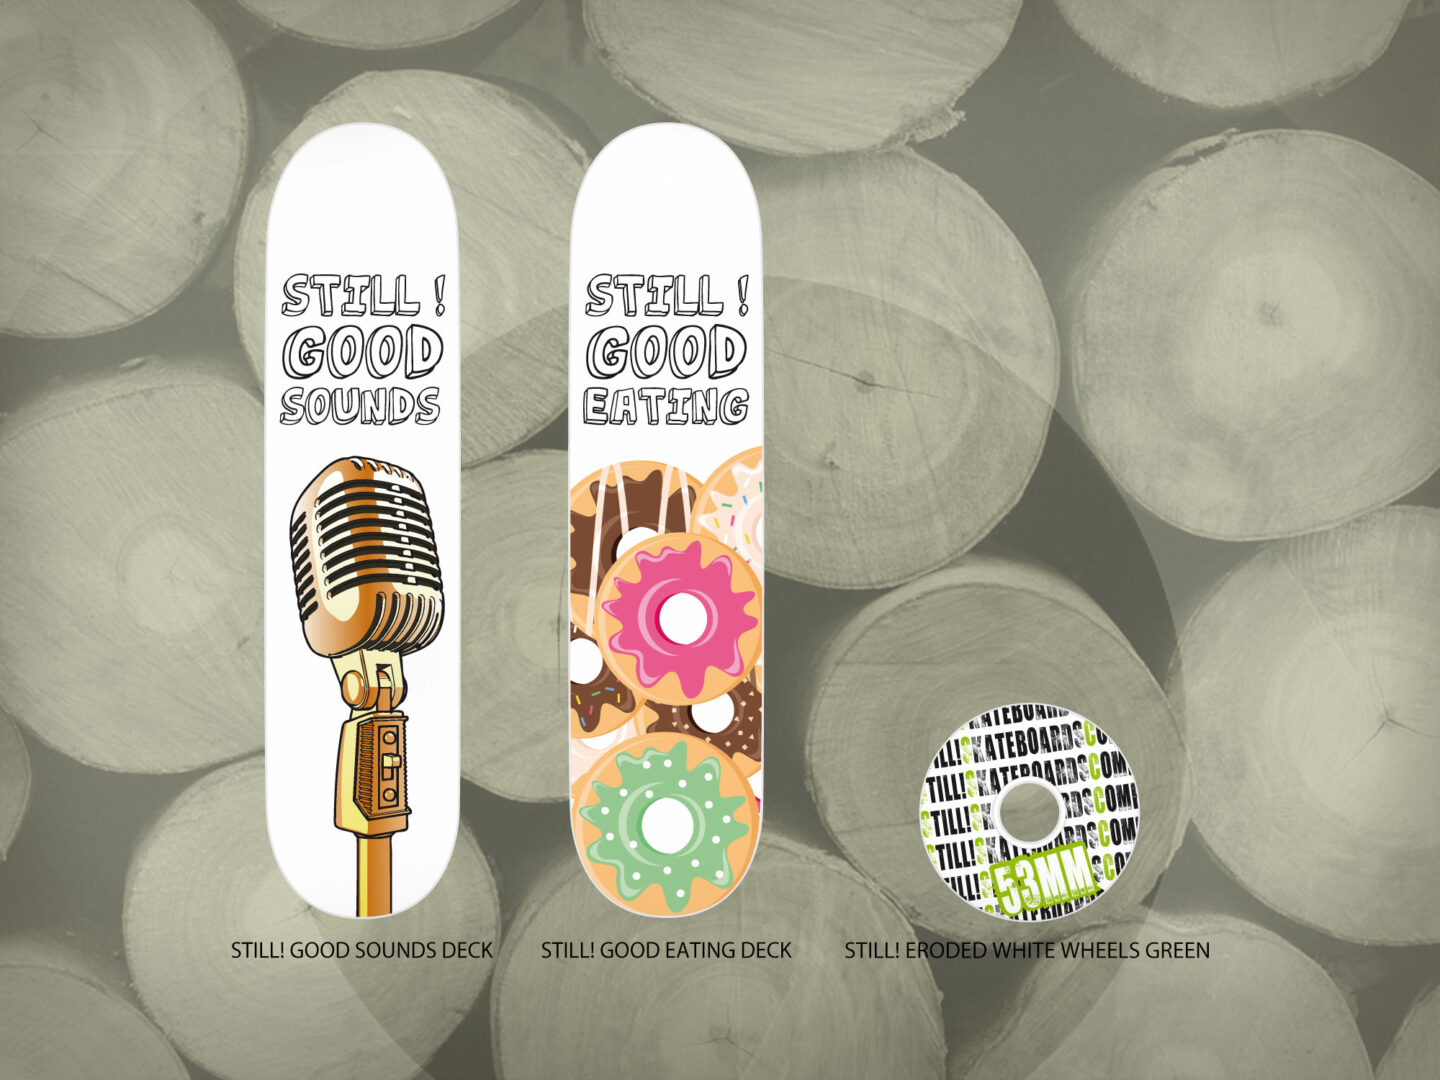 Still! Skateboards Grafica Tavole da Skateboard Still! Good Sounds e Still! Good Eating